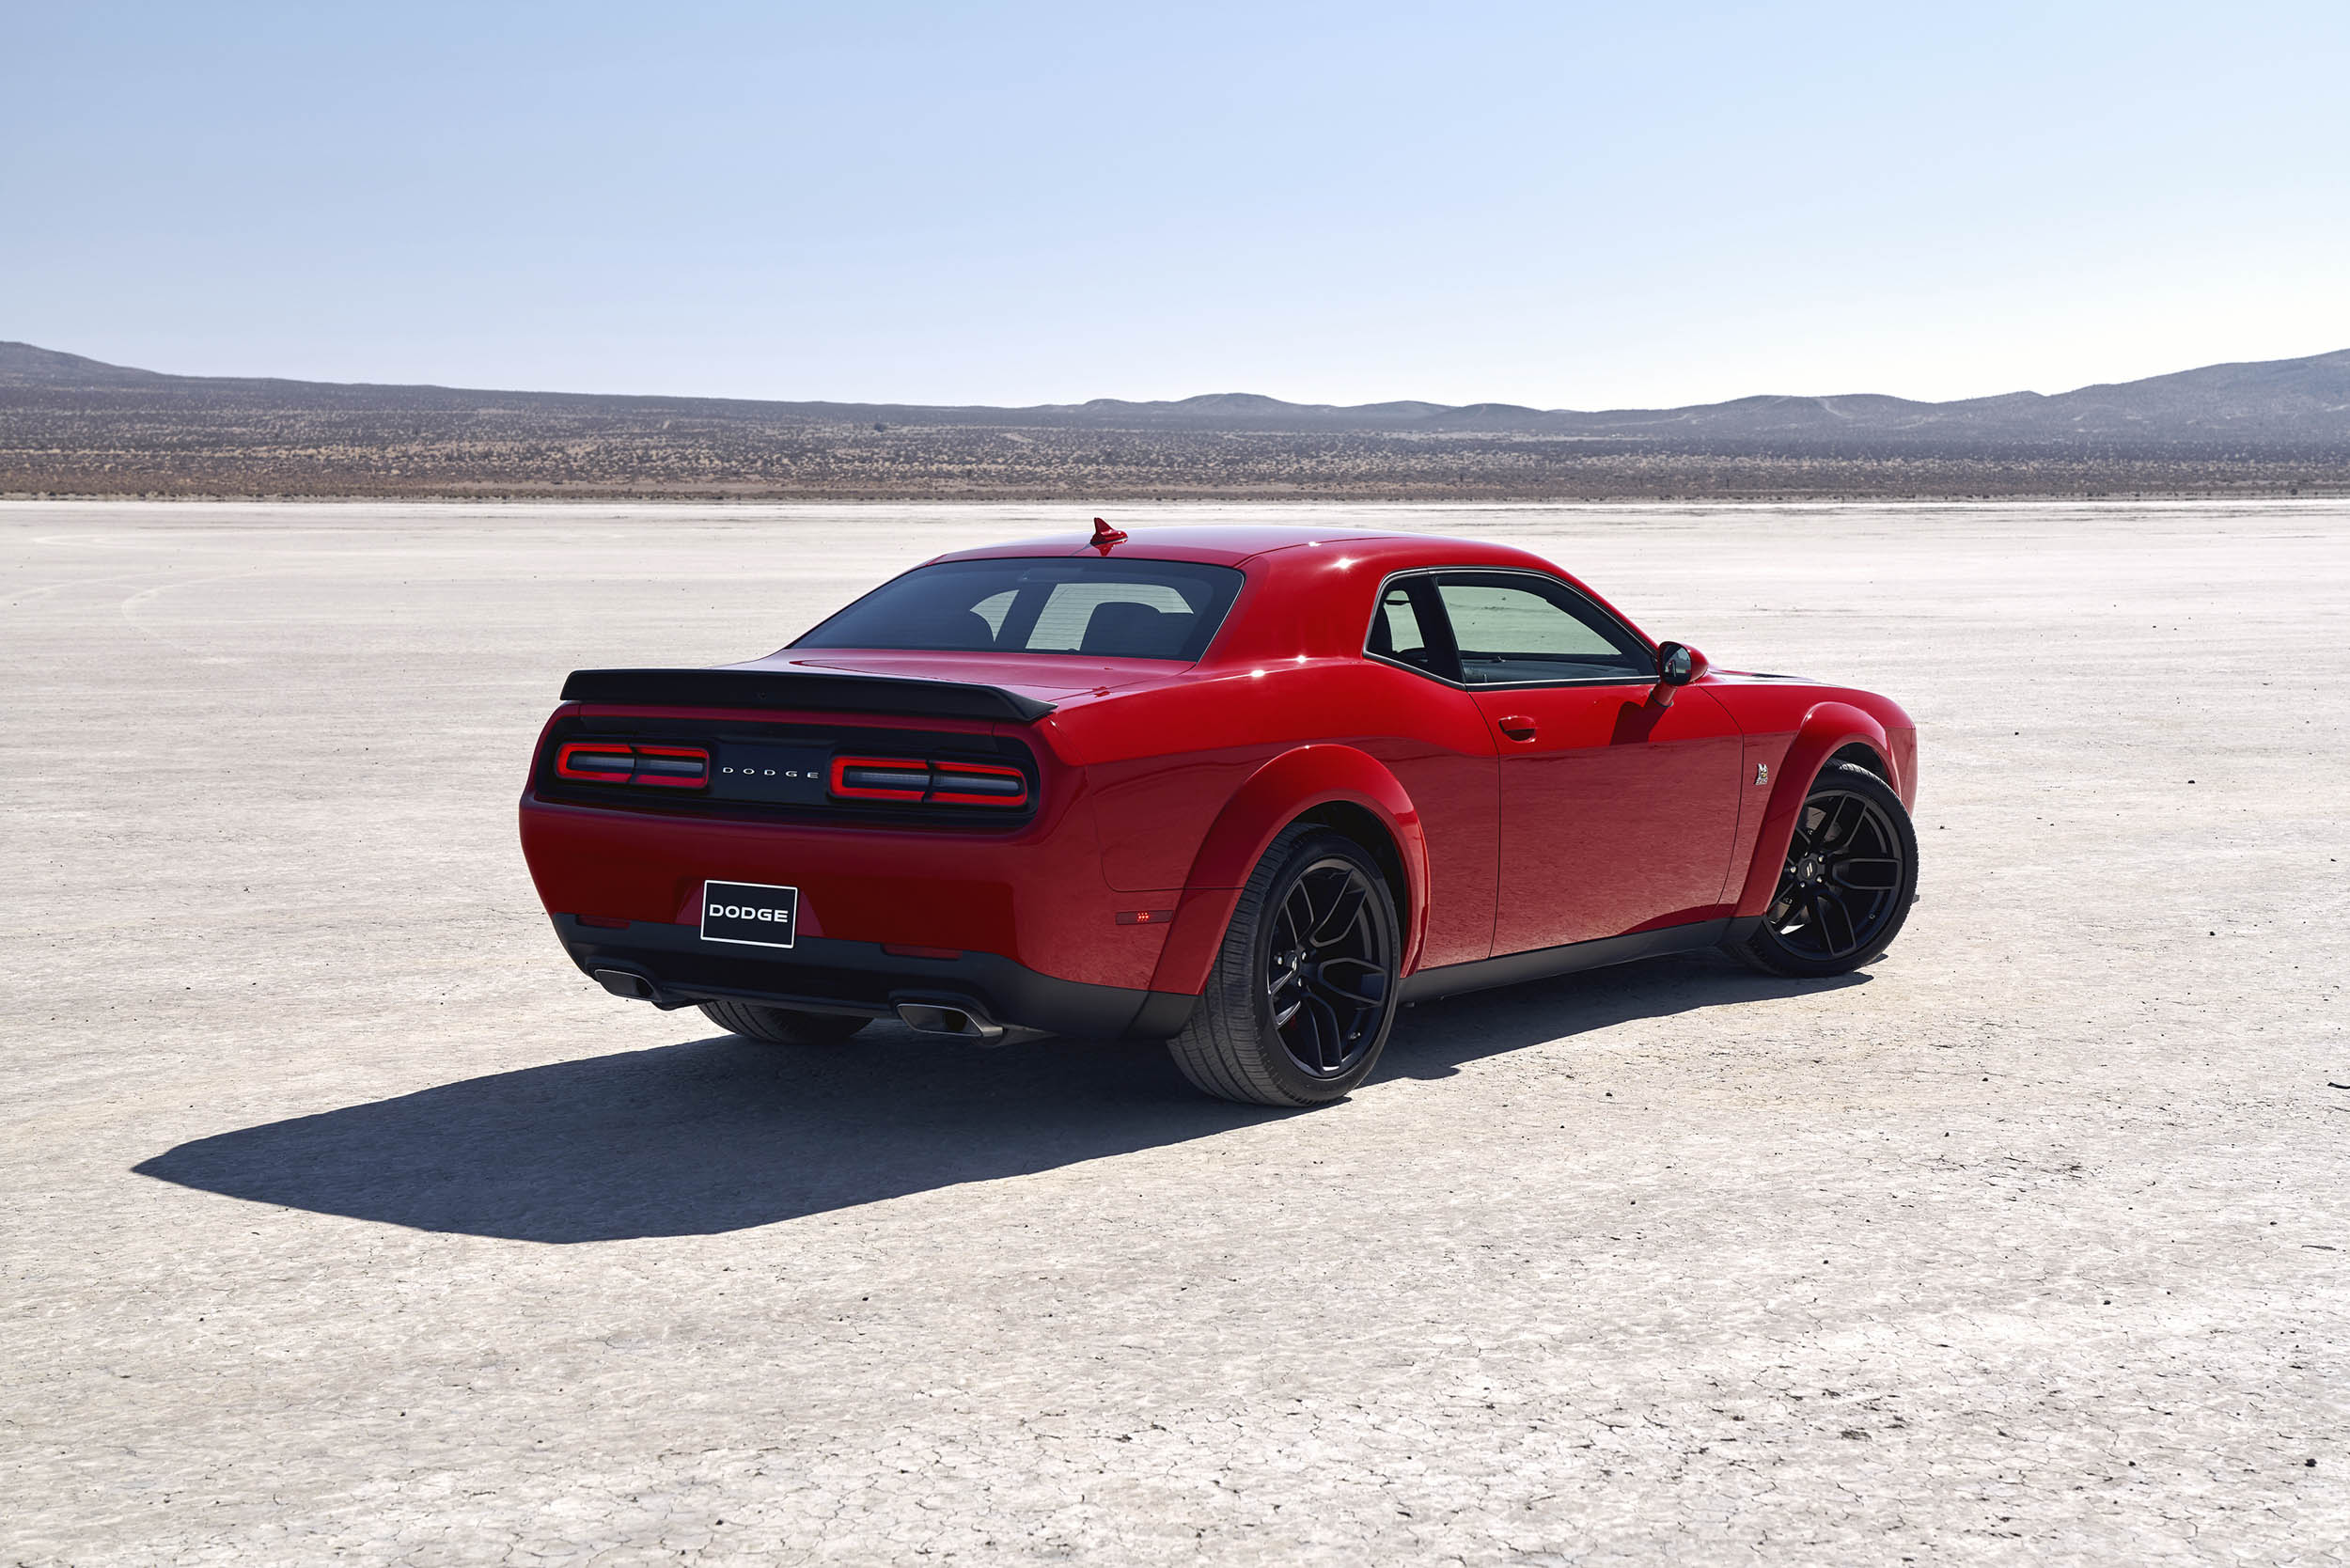 2019 Dodge Challenger R/T Scat Pack Widebody rear 3/4